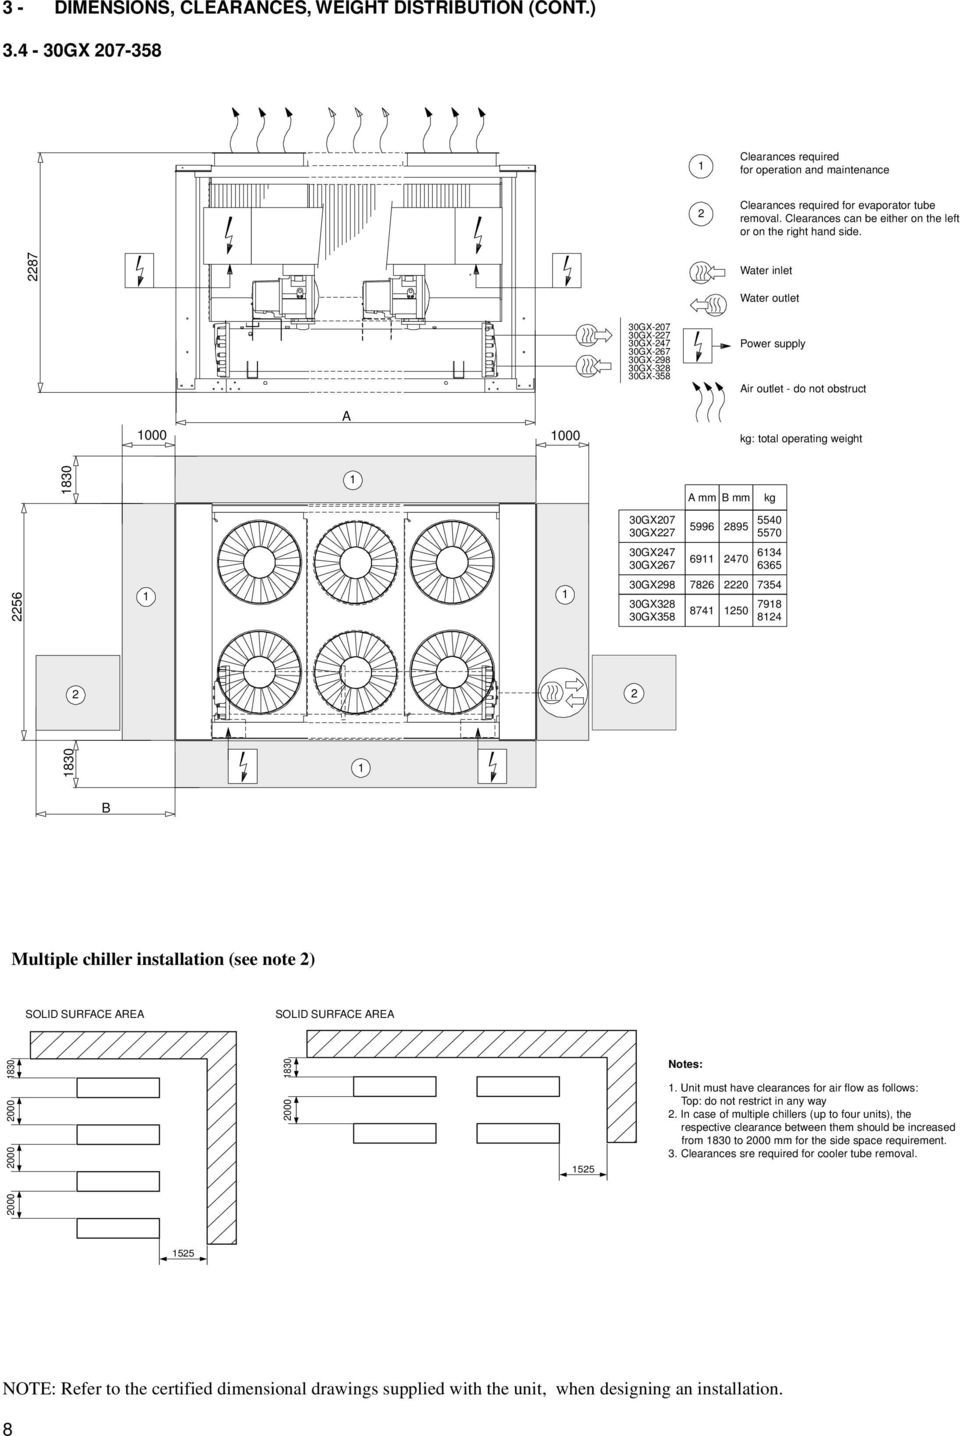 carrier 30gb chiller wiring diagram 1988 toyota pickup stereo hx 300 diagrams schematics 30hxc gx screw compressor water cooled liquid chillers and air inlet outlet 30gx 207 227 247 267